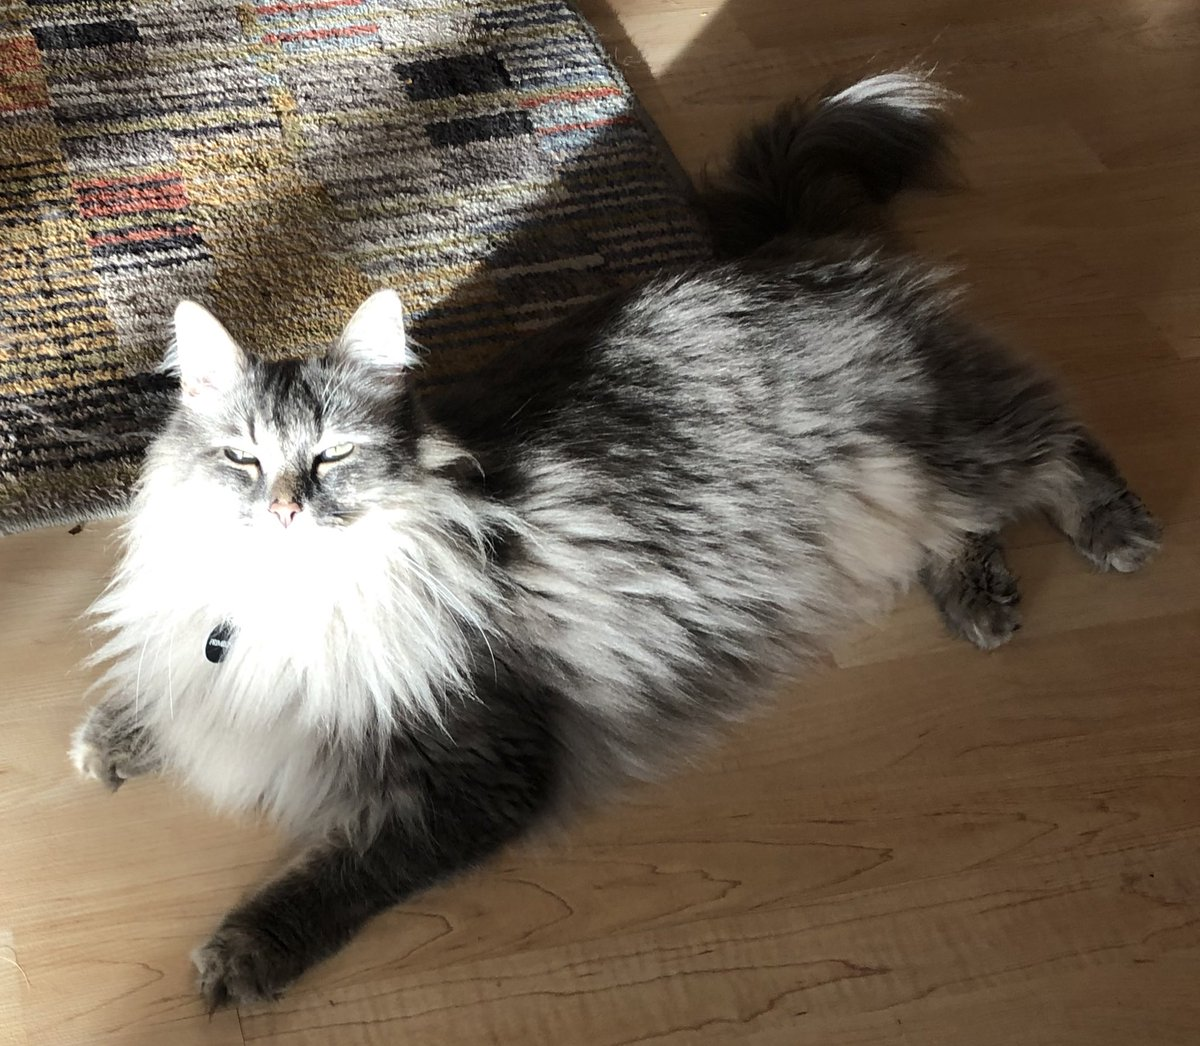 Dad says I look especially gorgeous in this sunbeam...  I think he's biased though...   😹😽 ☀️ 🐾  #Caturday #CatsOfTwitter https://t.co/WbNTagolNE